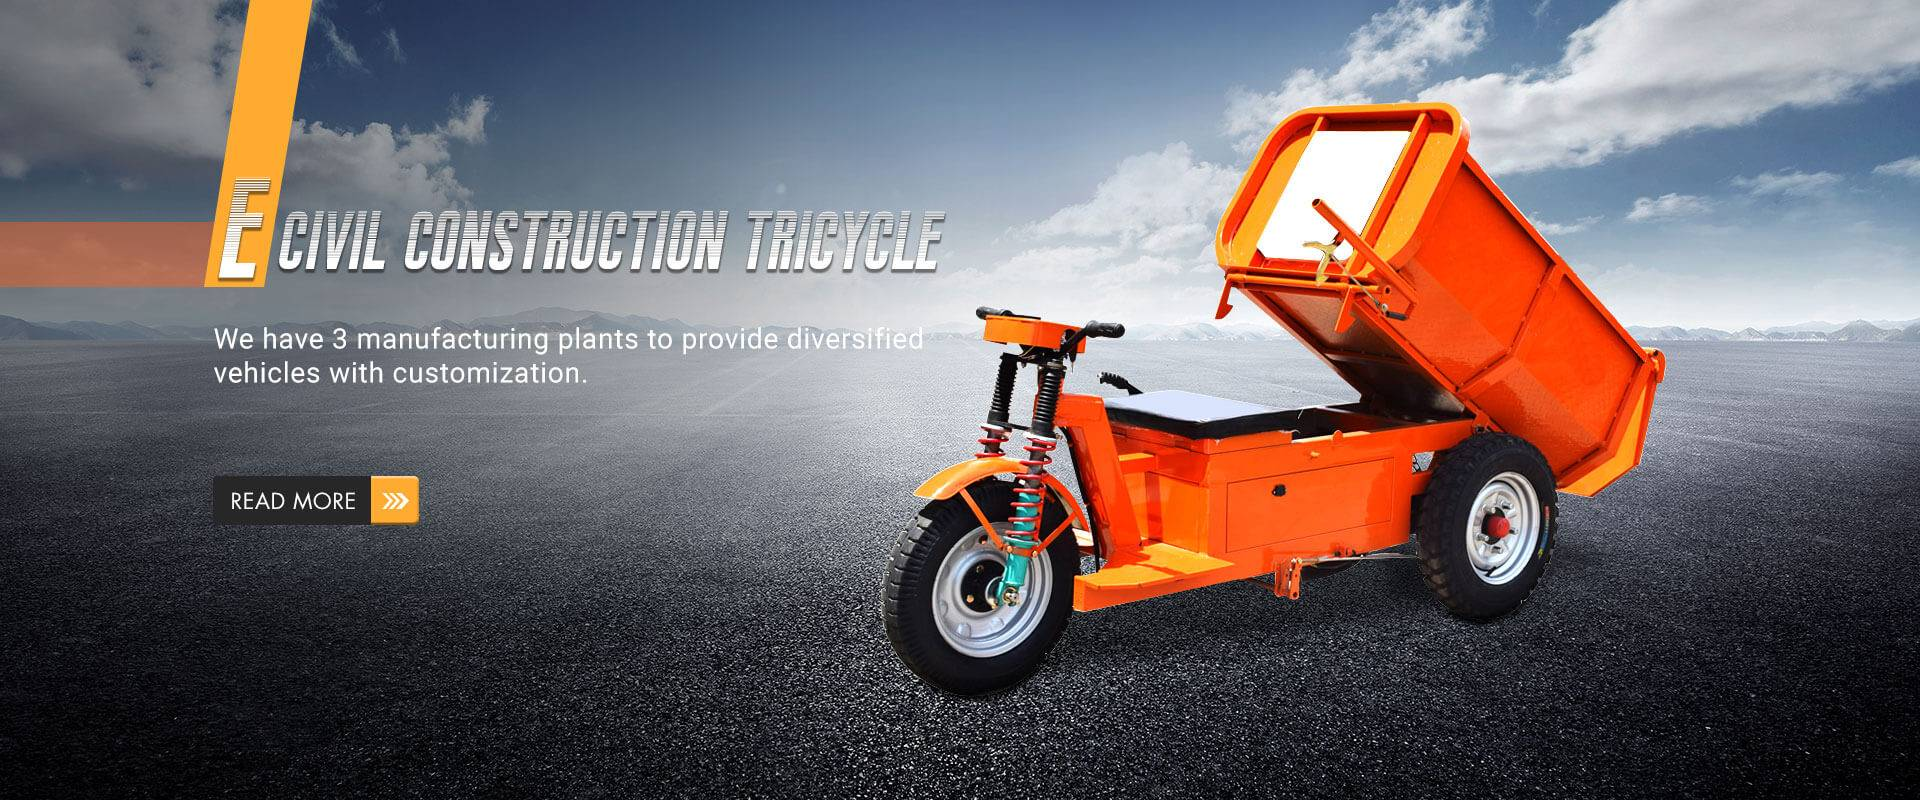 E civile Tricycle constructii